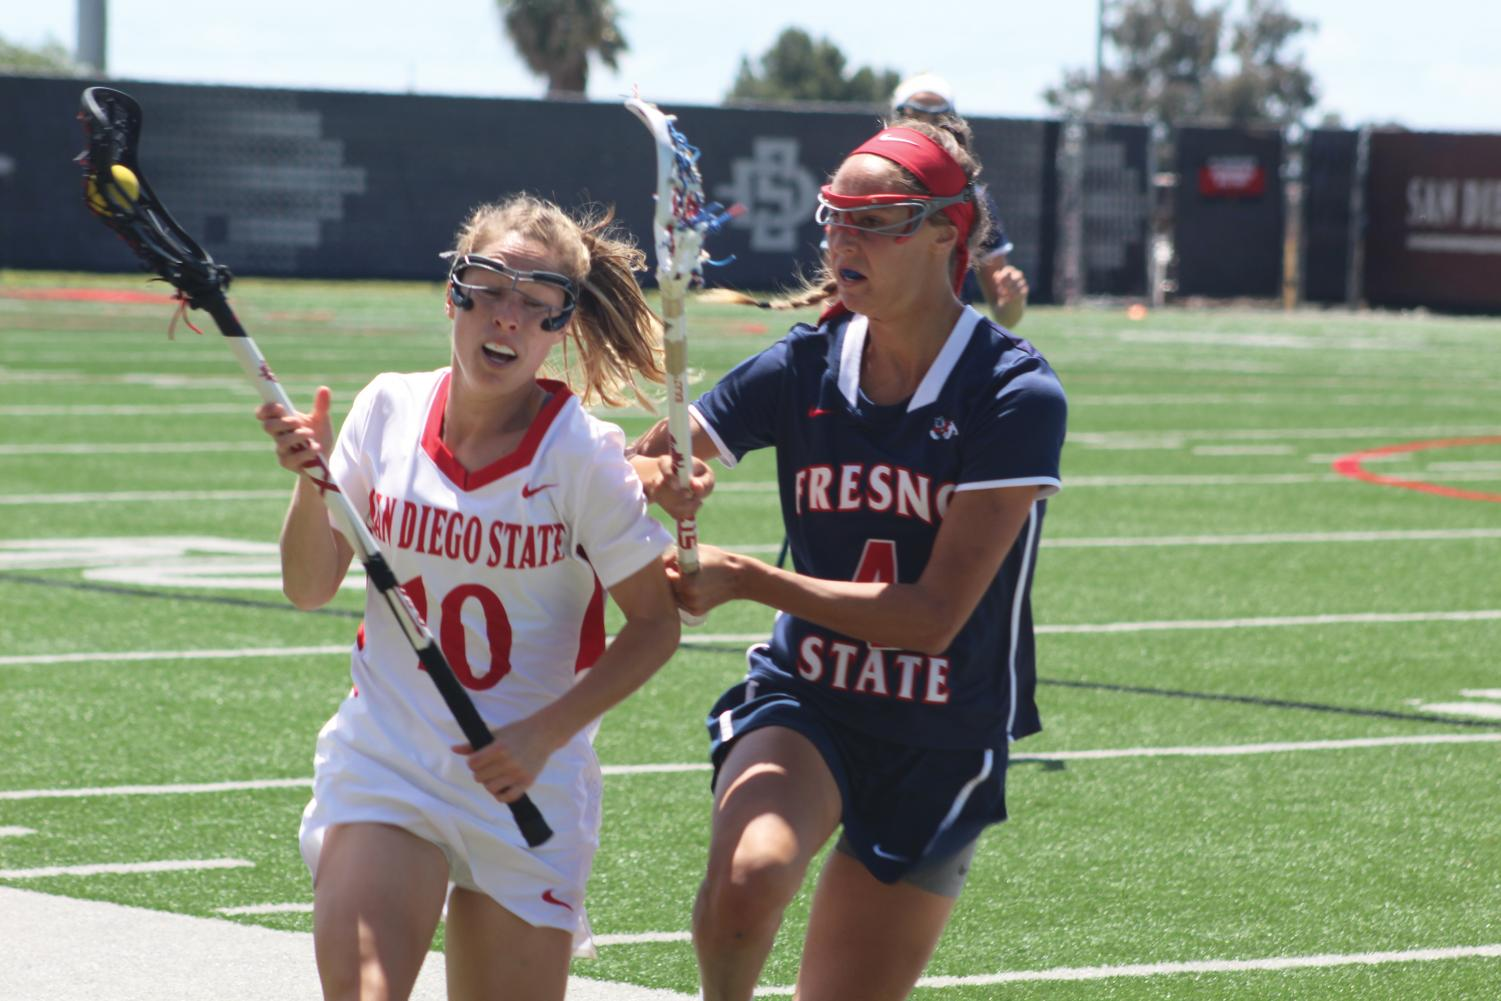 Junior midfielder Marissa Macrae (10) shrugs off Fresno State junior midfielder Kayla Galet (4) during the Aztecs' 16-15 victory over the Bulldogs on April 20 at the SDSU Lacrosse Field.